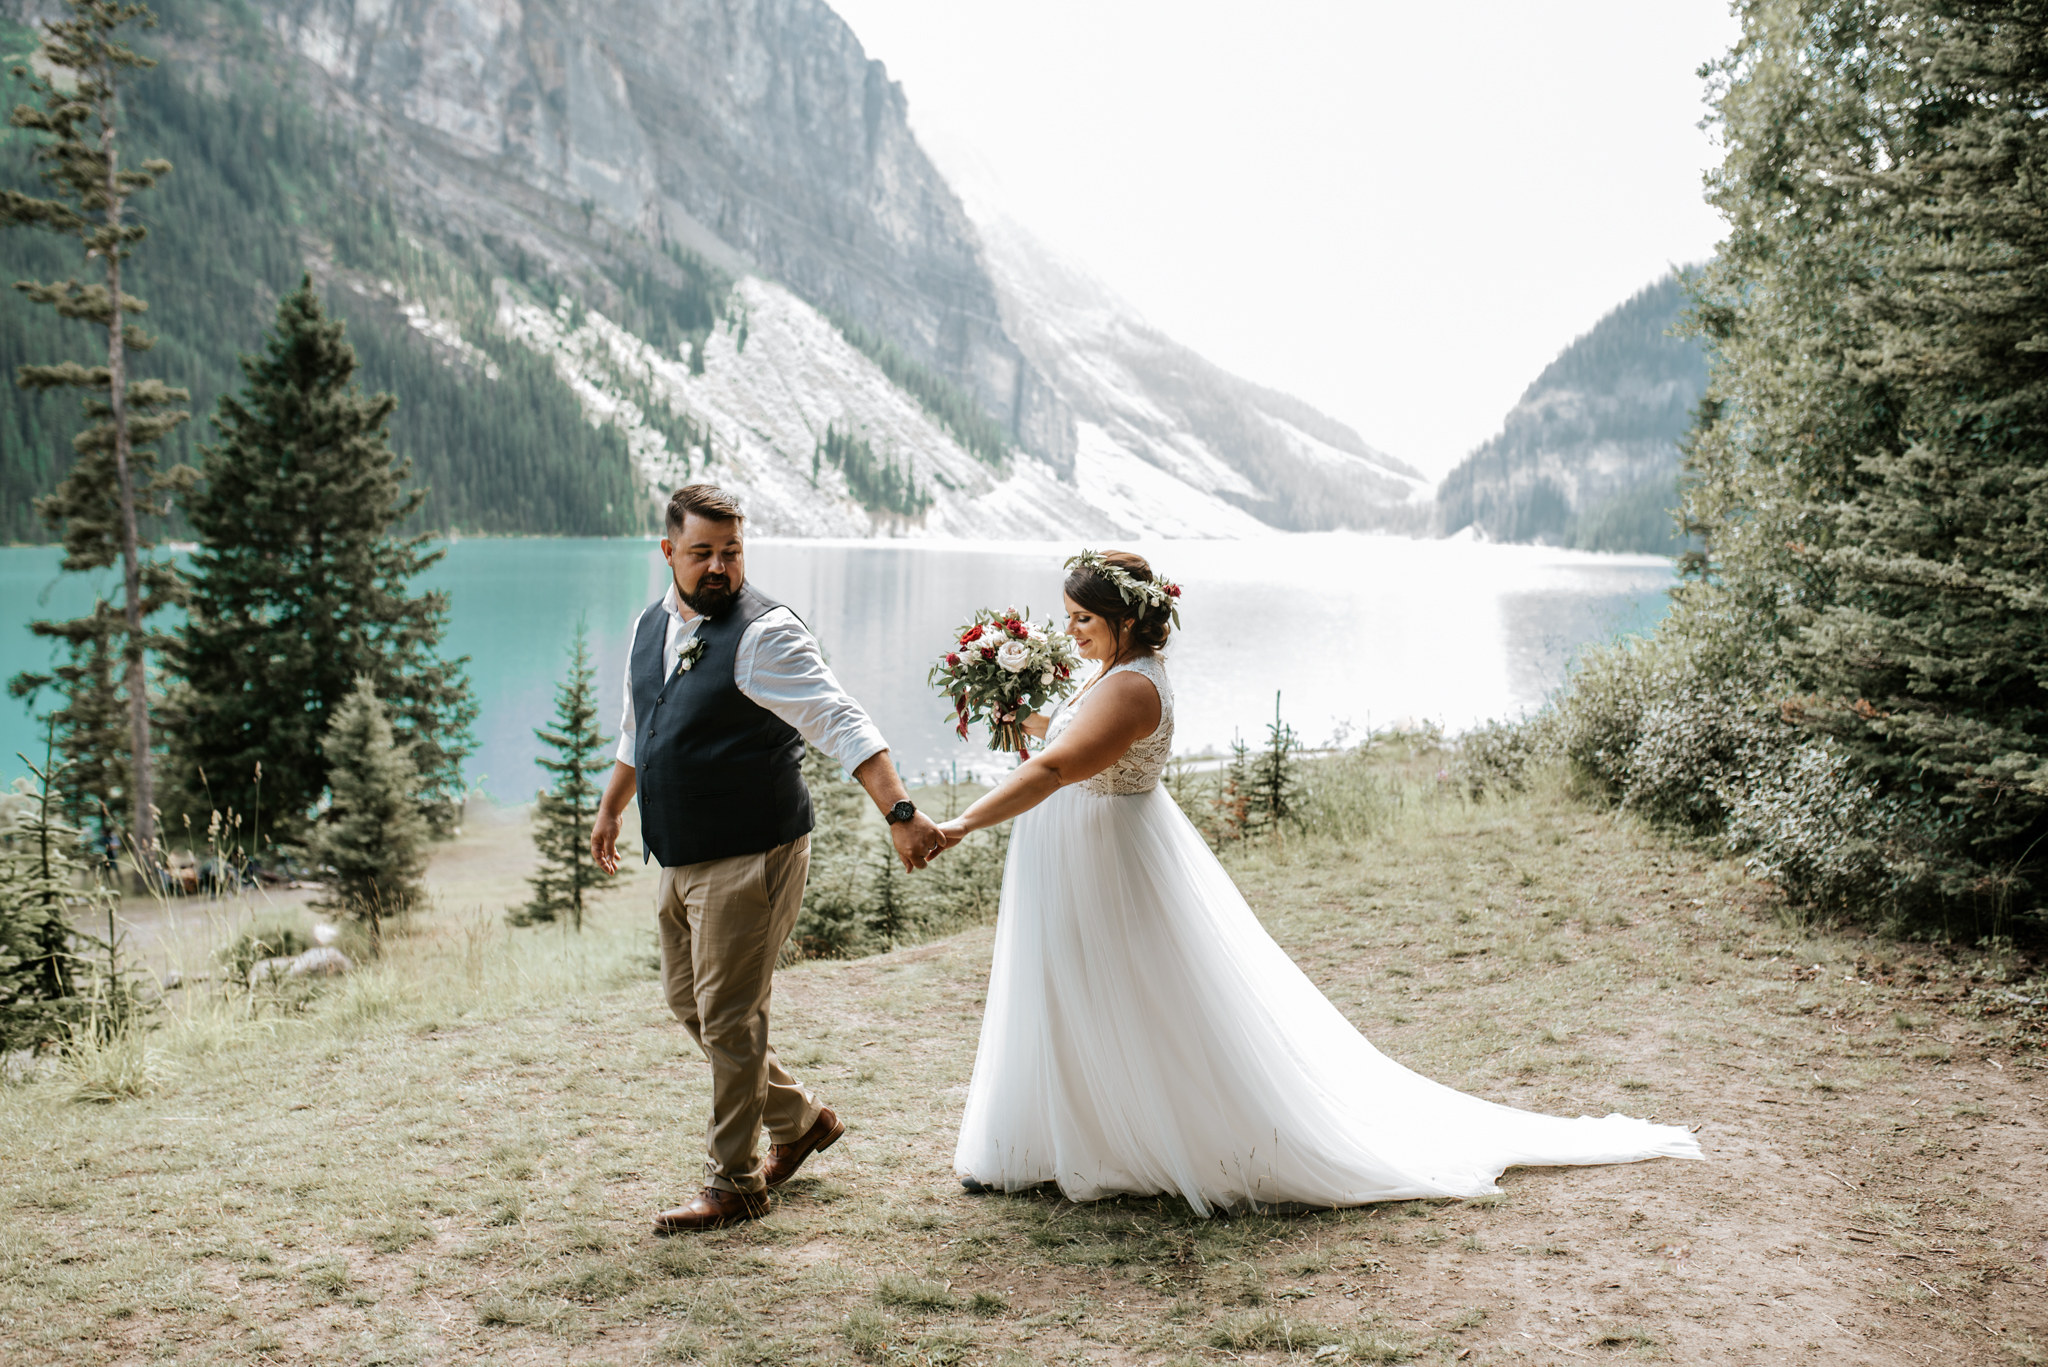 Banff Canada lake Louise elopement wedding Alberta traveling photographer videographer